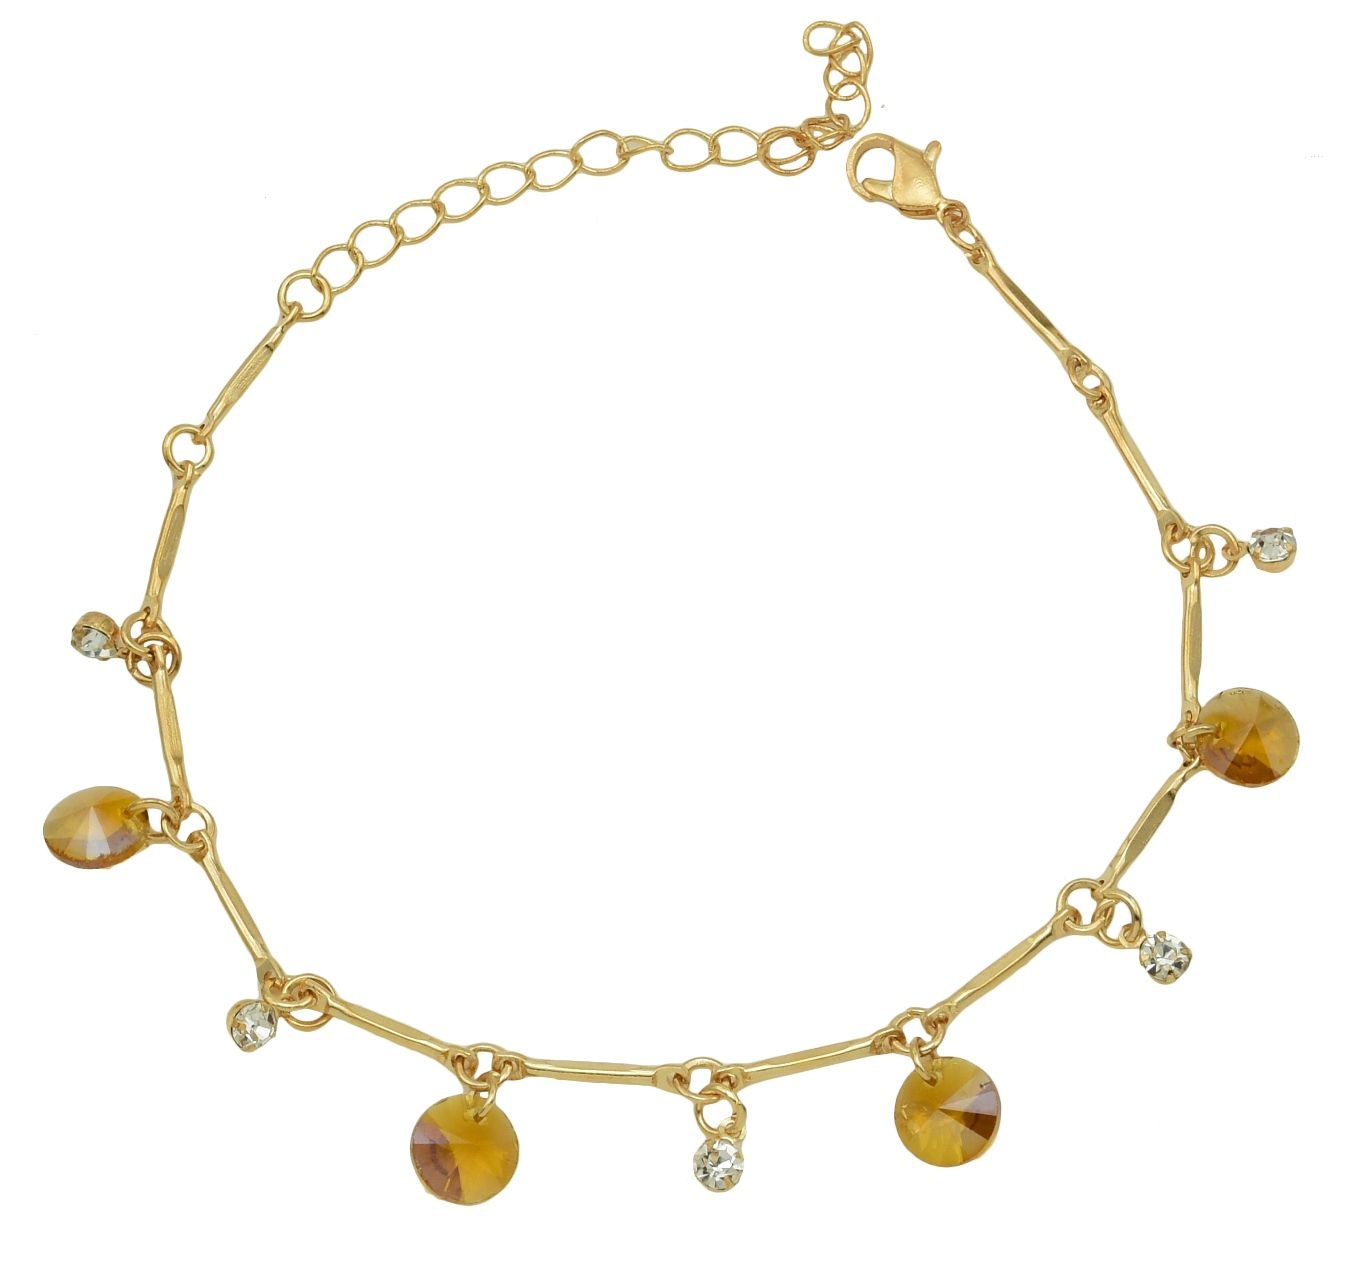 High Trendz Trendy Light Weight Gold Plated Anklet With Hanging Brown Crystal For Women And Girls